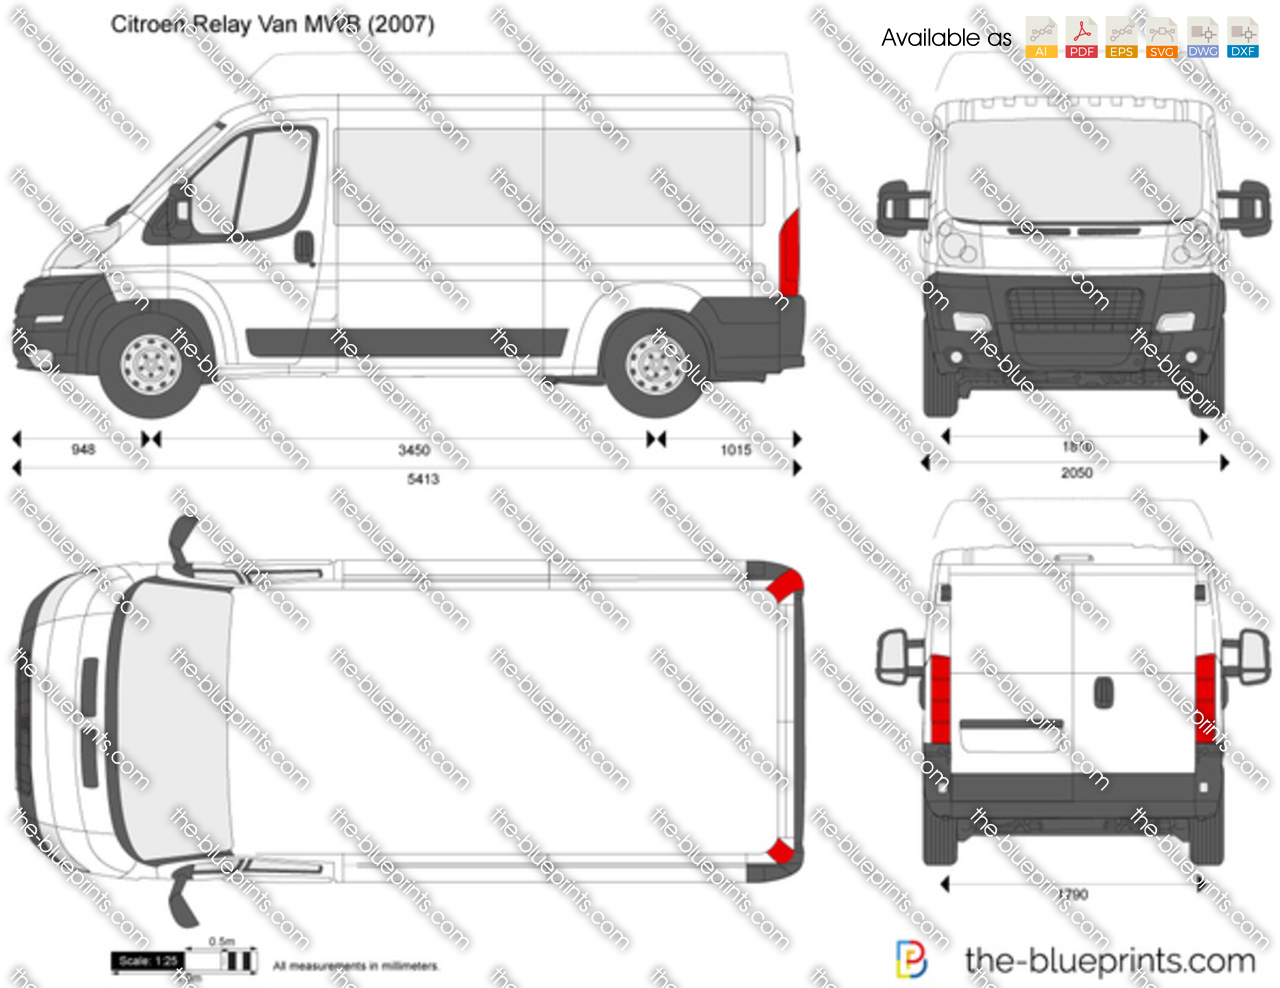 Citroen Relay Van Mwb Vector Drawing For Vehicle